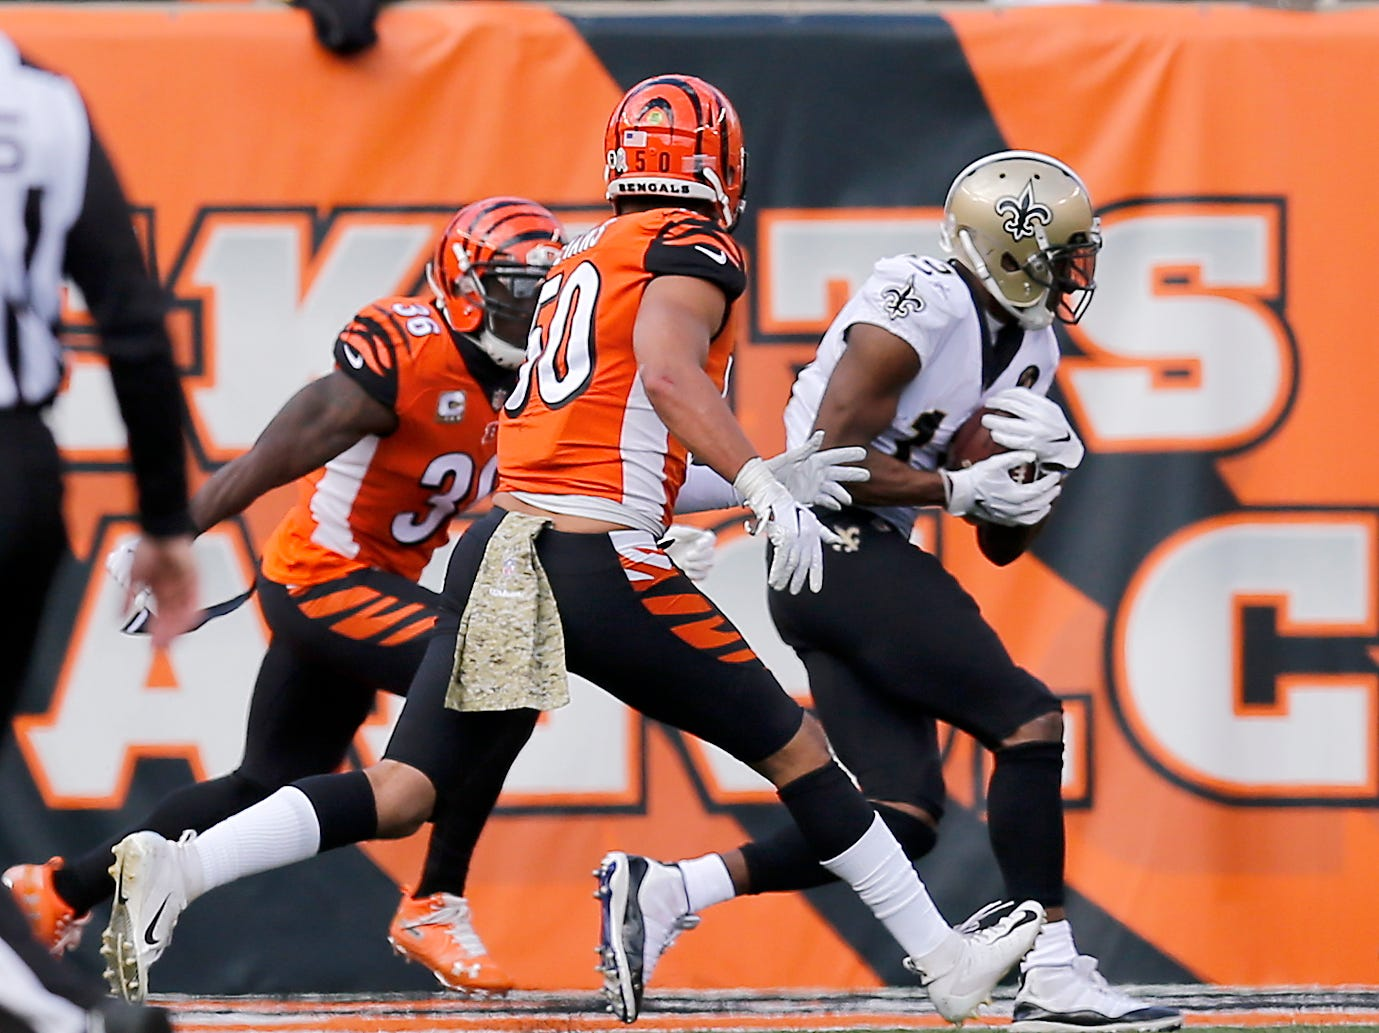 New Orleans Saints wide receiver Michael Thomas (13) makes a catch for a touchdown late in the second quarter of the NFL Week 10 game between the Cincinnati Bengals and the New Orleans Saints at Paul Brown Stadium in downtown Cincinnati on Sunday, Nov. 11, 2018. The Saints led 35-7 at halftime.